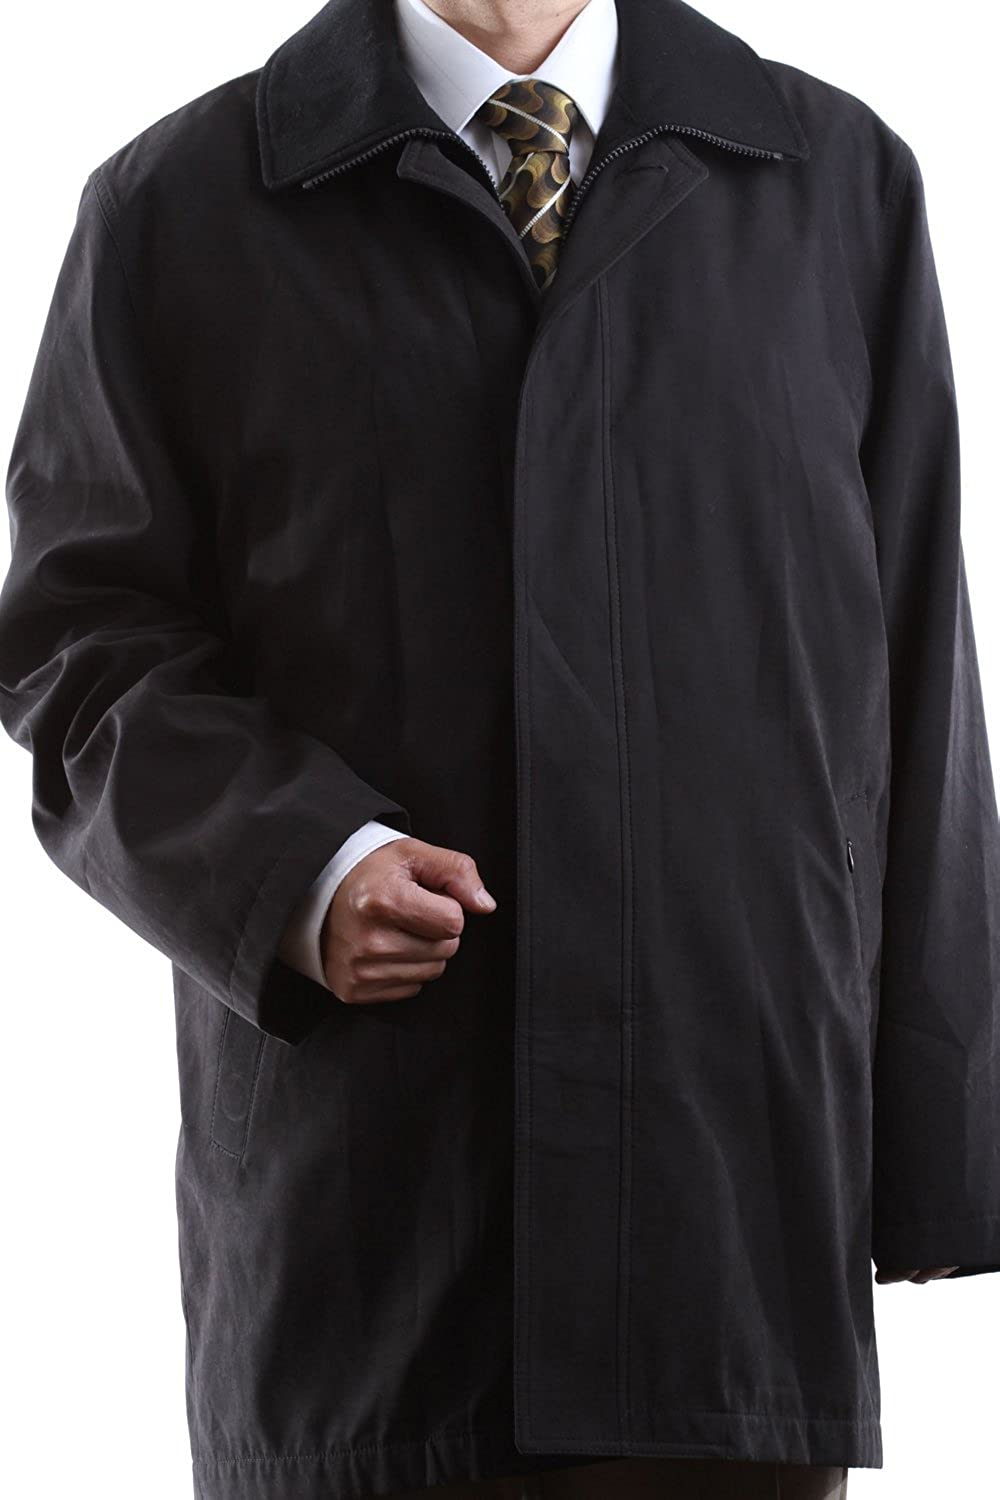 Cianni Men's Single Breasted Black 3/4 Length All Year Round Raincoat